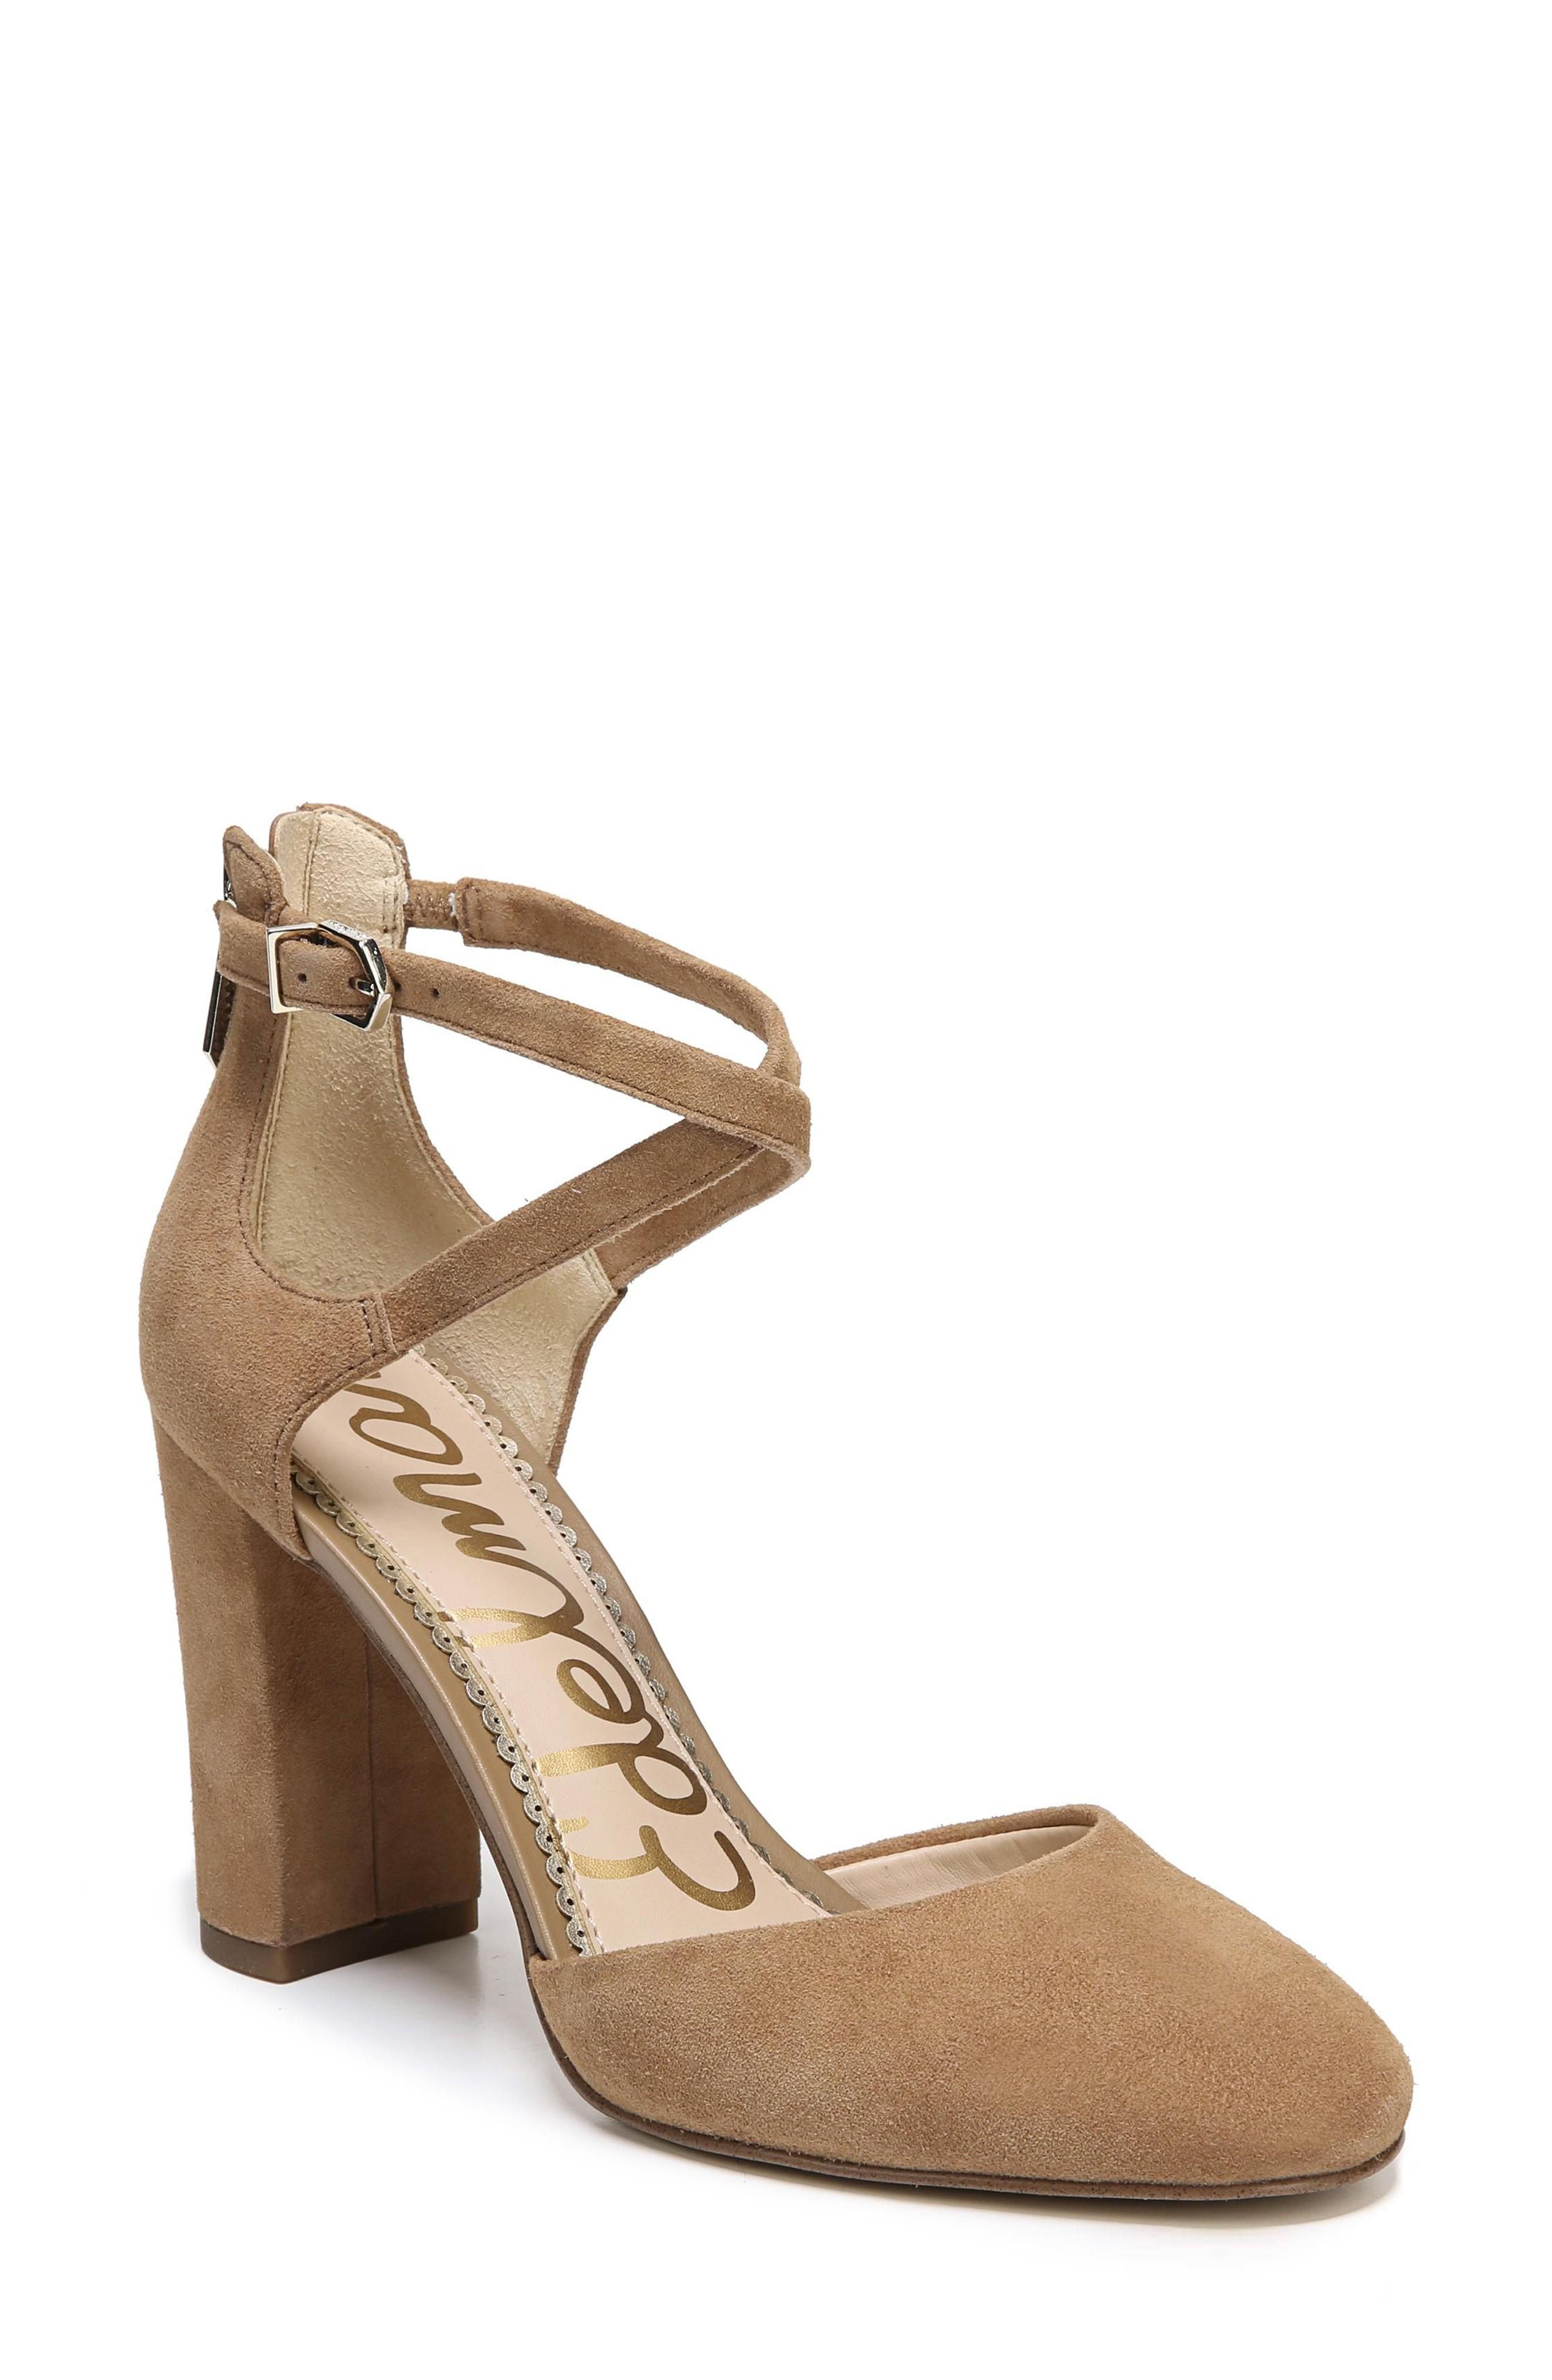 baca12ca8718f5 Slim straps cross at the ankle of a scene-stealing block-heel pump in a  classic round-toe silhouette. Style Name  Sam Edelman Simmons Pump (Women).